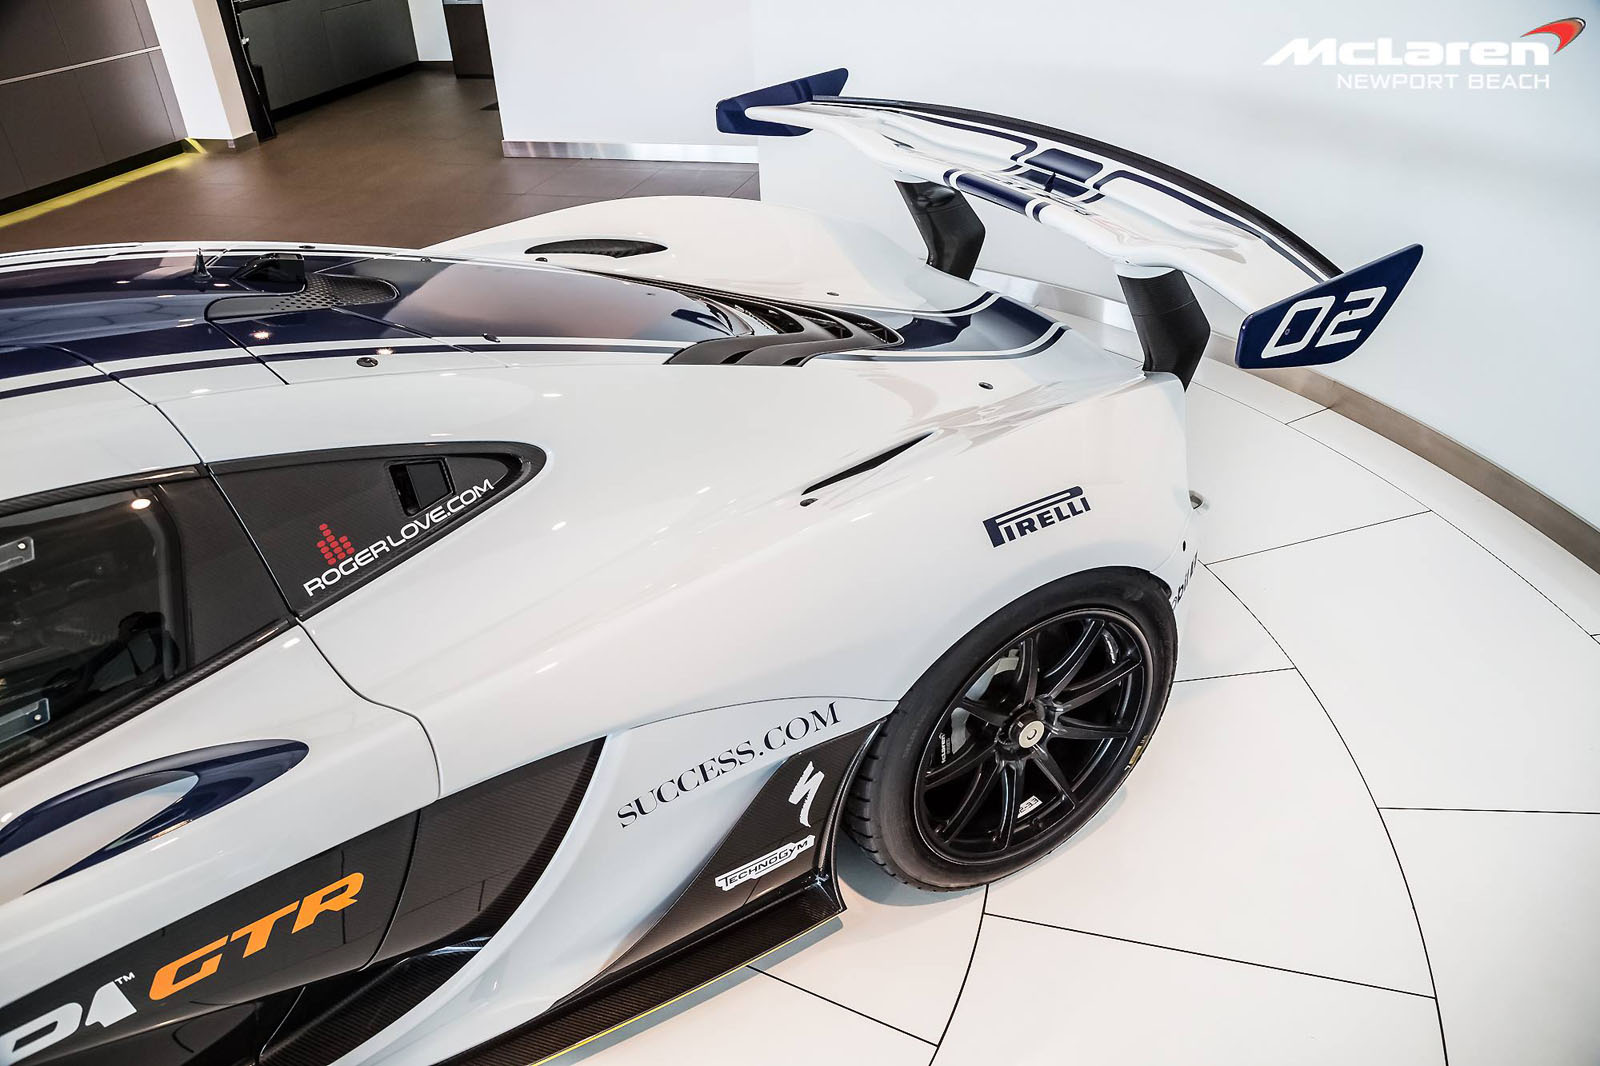 mclaren p1 gtr listed for sale in southern california carscoops. Black Bedroom Furniture Sets. Home Design Ideas